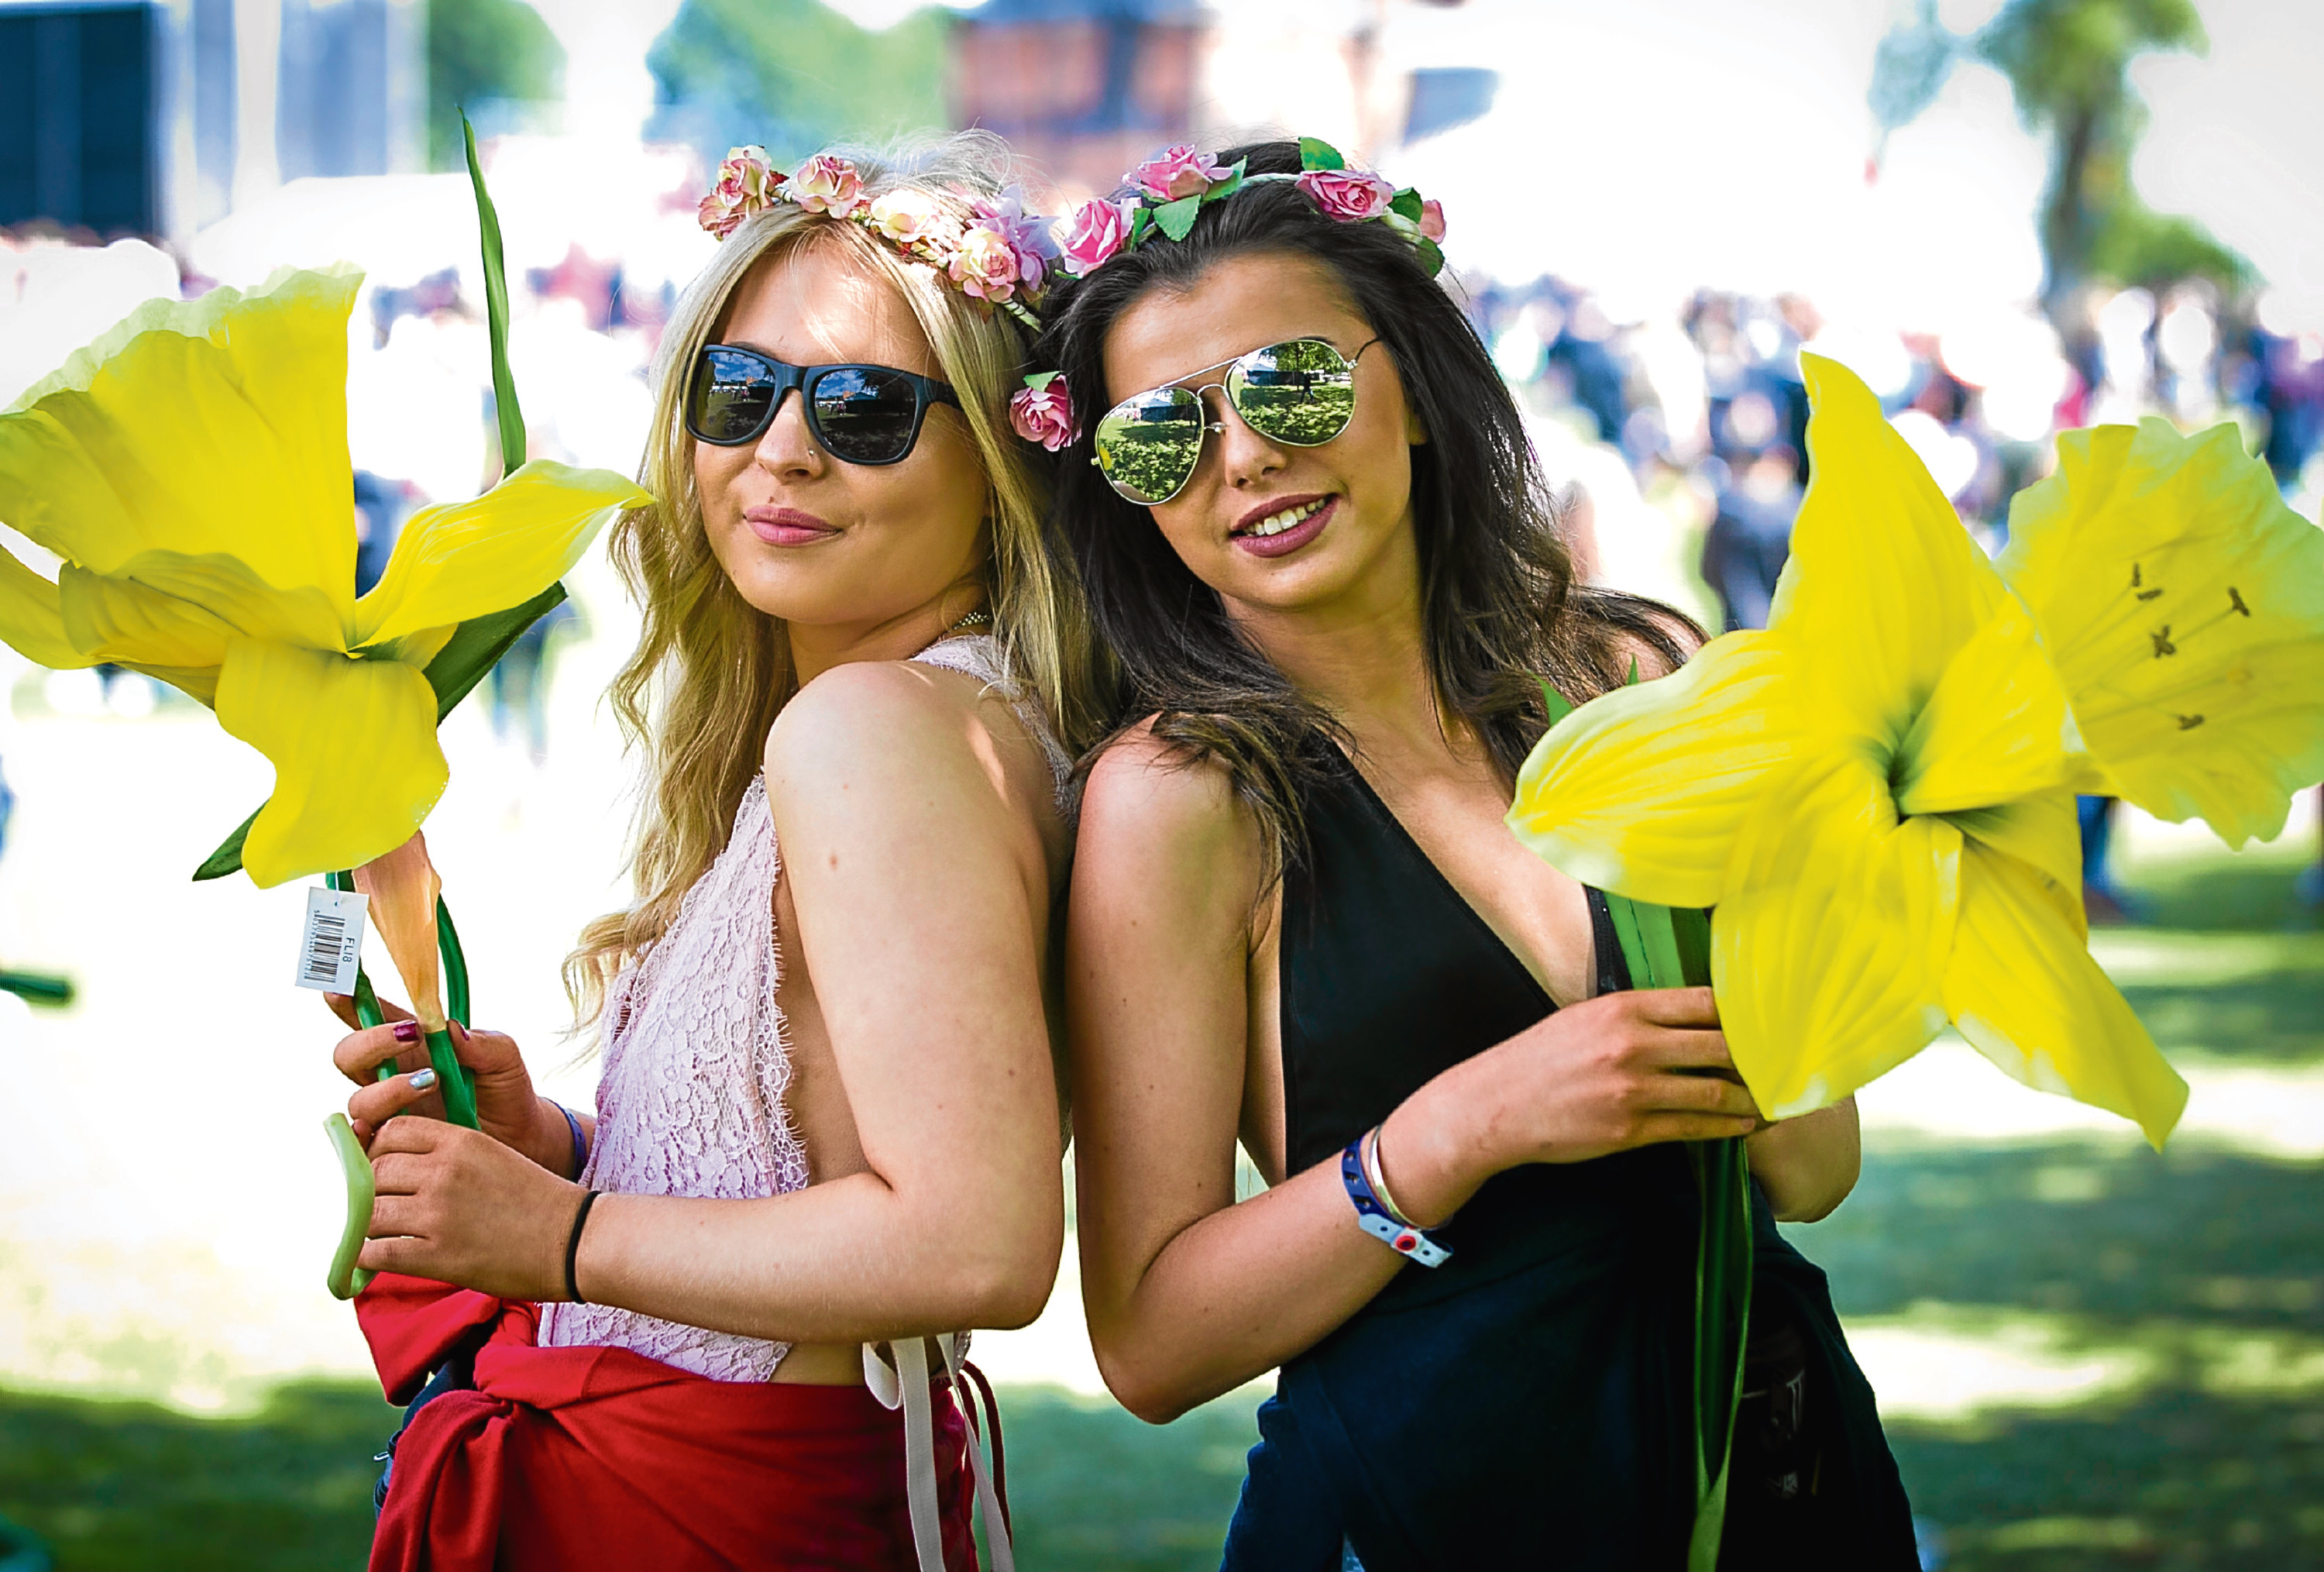 Revellers Cora Lamos (17), and Becca Gilmartin (17) at Glasgow's TRNSMT festival (Andrew Cawley / DC Thomson)